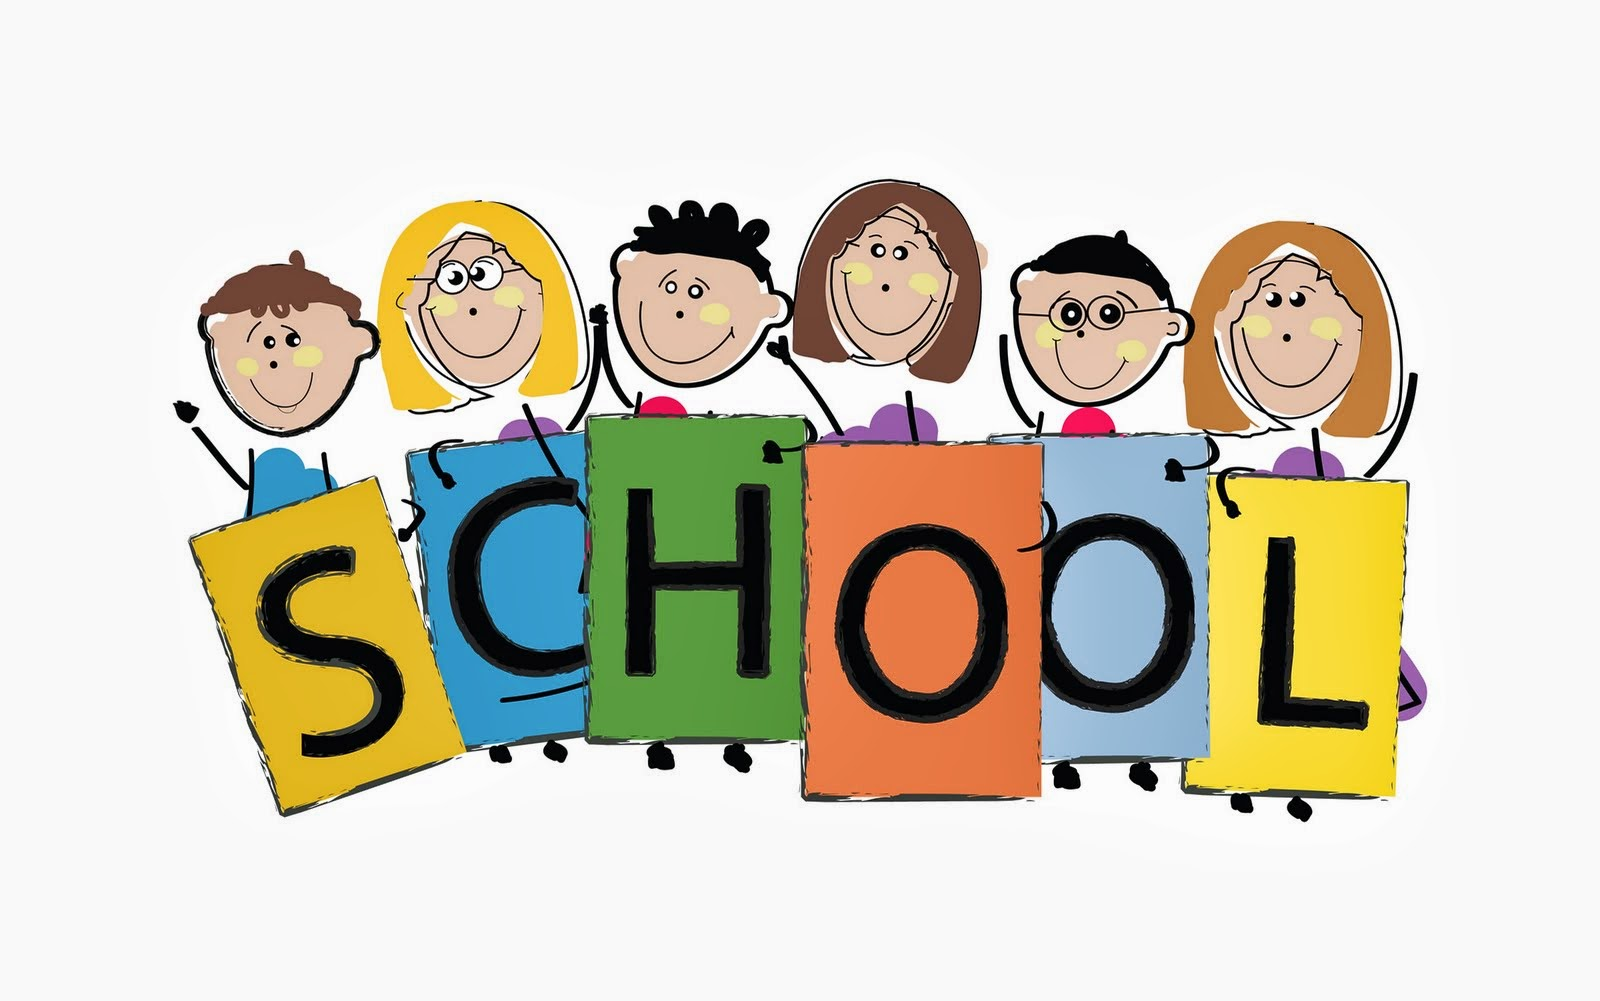 Pictures For School Children - Clipart l-Pictures For School Children - Clipart library-14